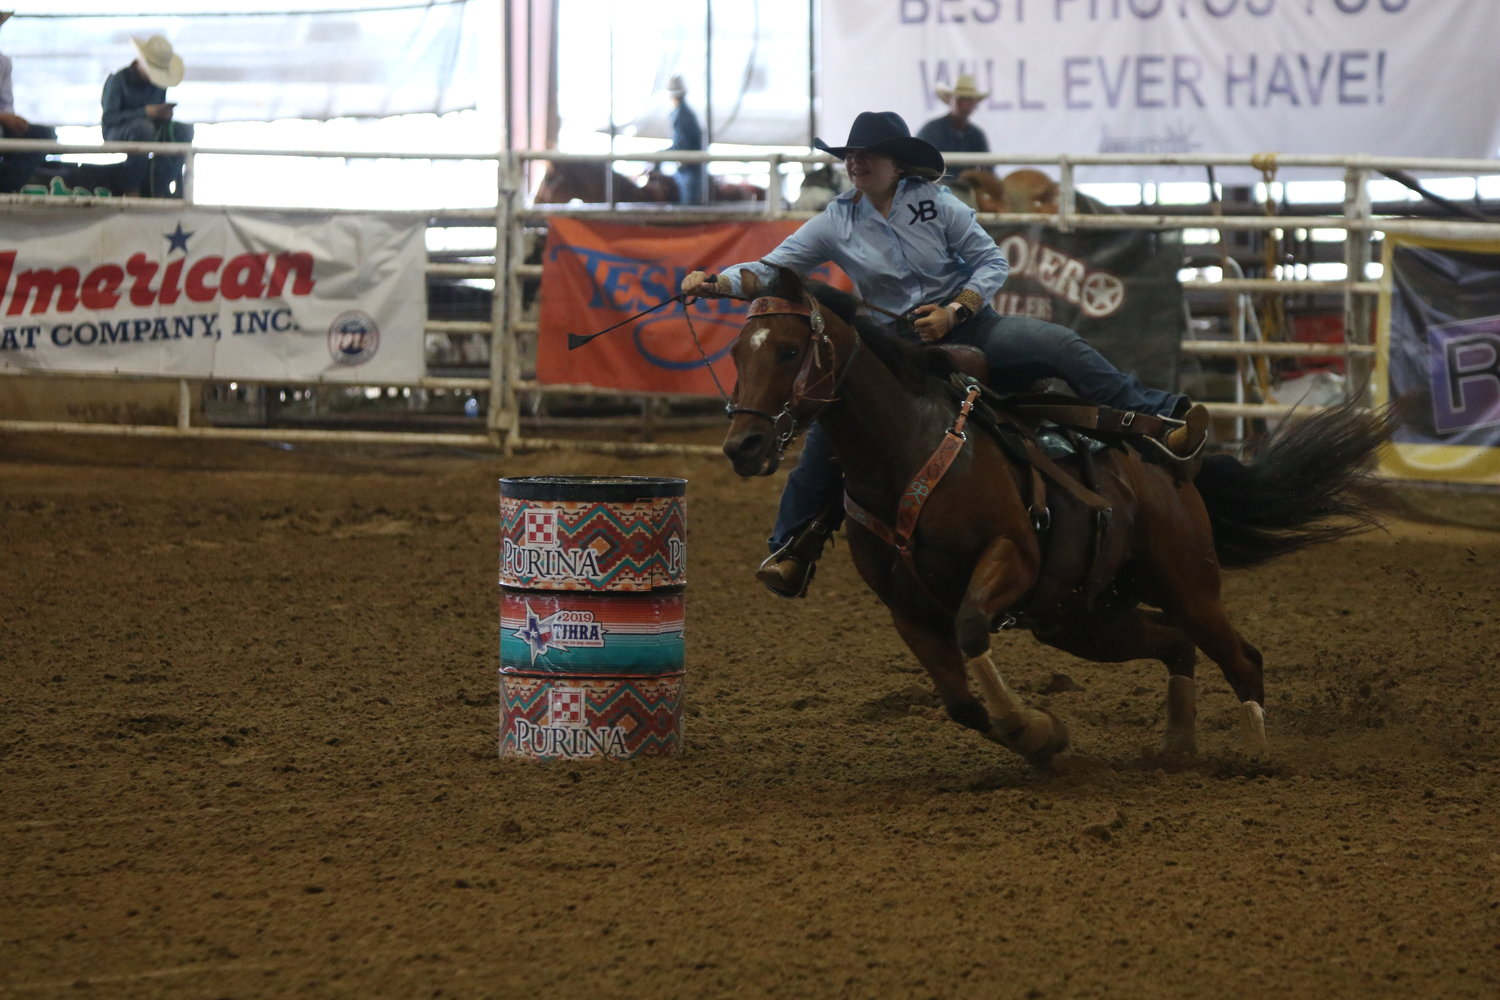 Kori Bigbee of Waelder competed in the barrel racing at last week's TJHRA state finals.